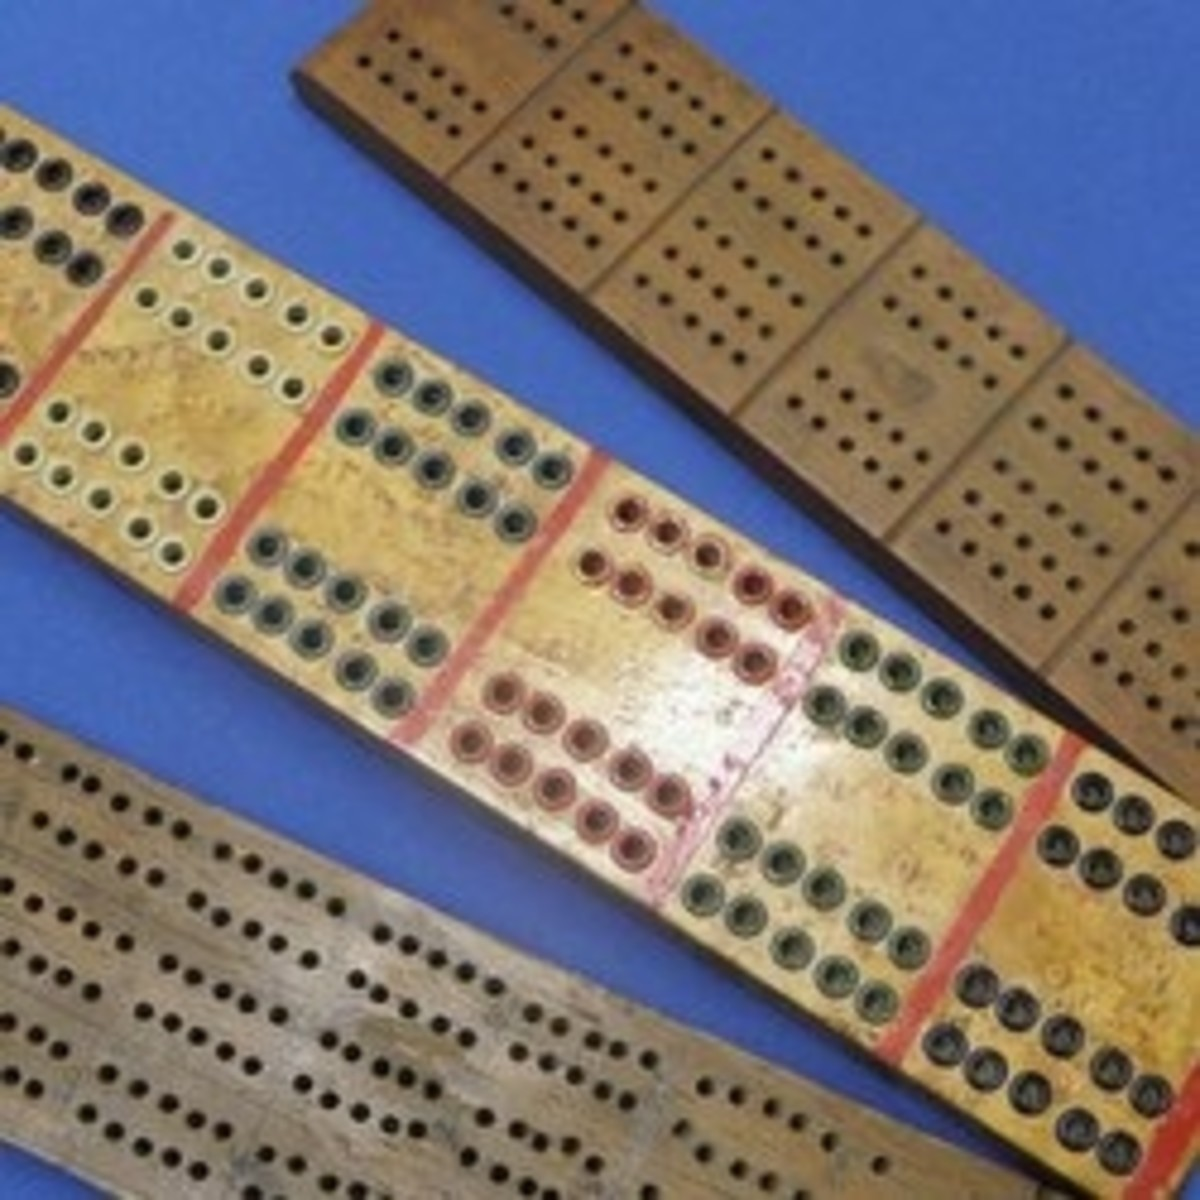 Vintage and Antique Cribbage Board Collecting